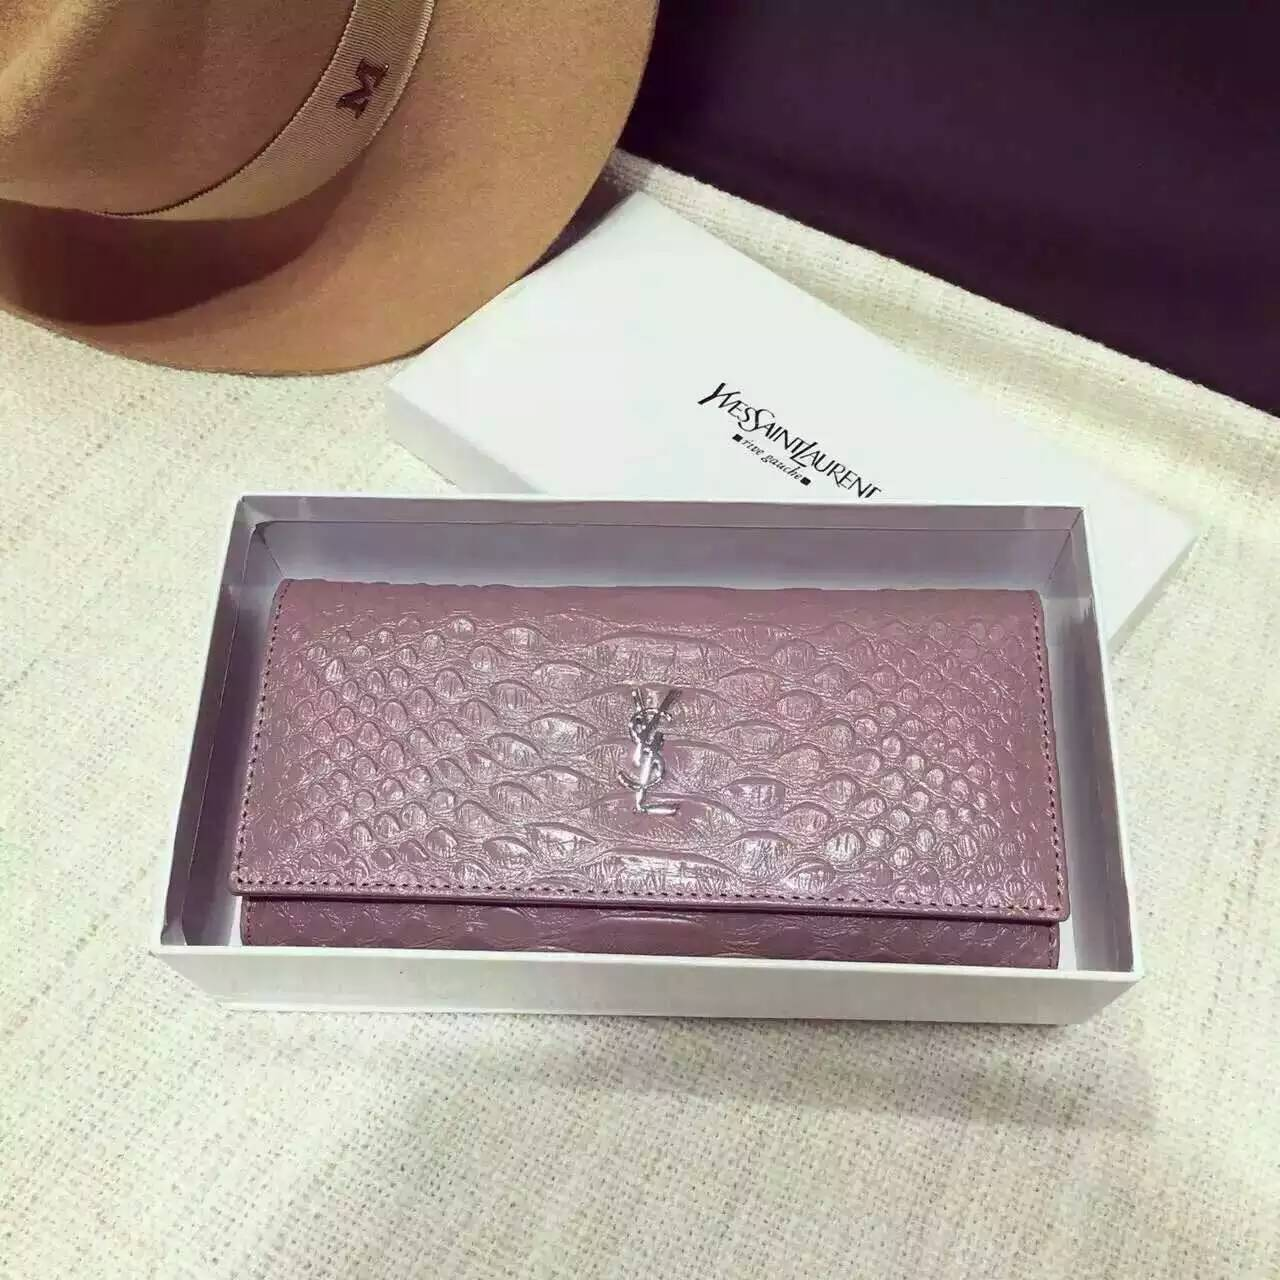 Limited Edition!2016 New Saint Laurent Small Leather Goods Cheap Sale-Saint Laurent Clutch in Pink Python Embossed Leather